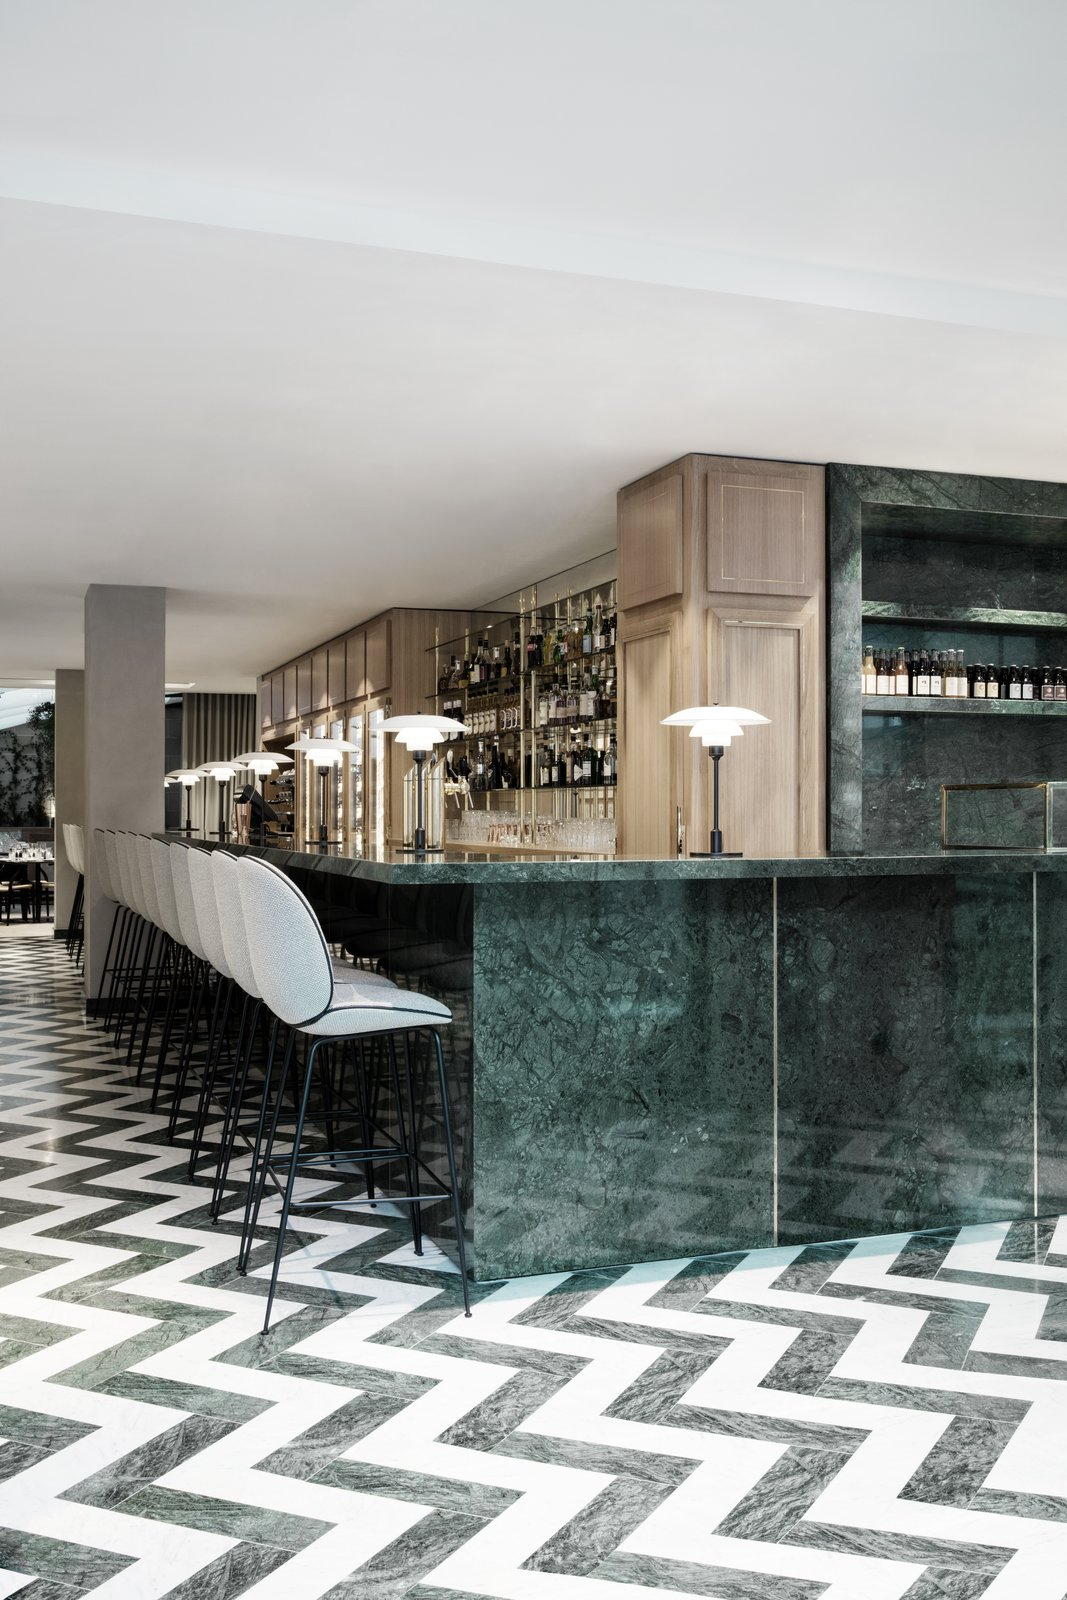 The expansive green marble bar hosts GUBI's Beetle Bar Stools. The entire space is filled with a pleasant green-focused color palette that's offset by shades of gray and brass details. The Revived Maison du Danemark Brings Two New Danish Restaurants to Paris - Photo 6 of 10